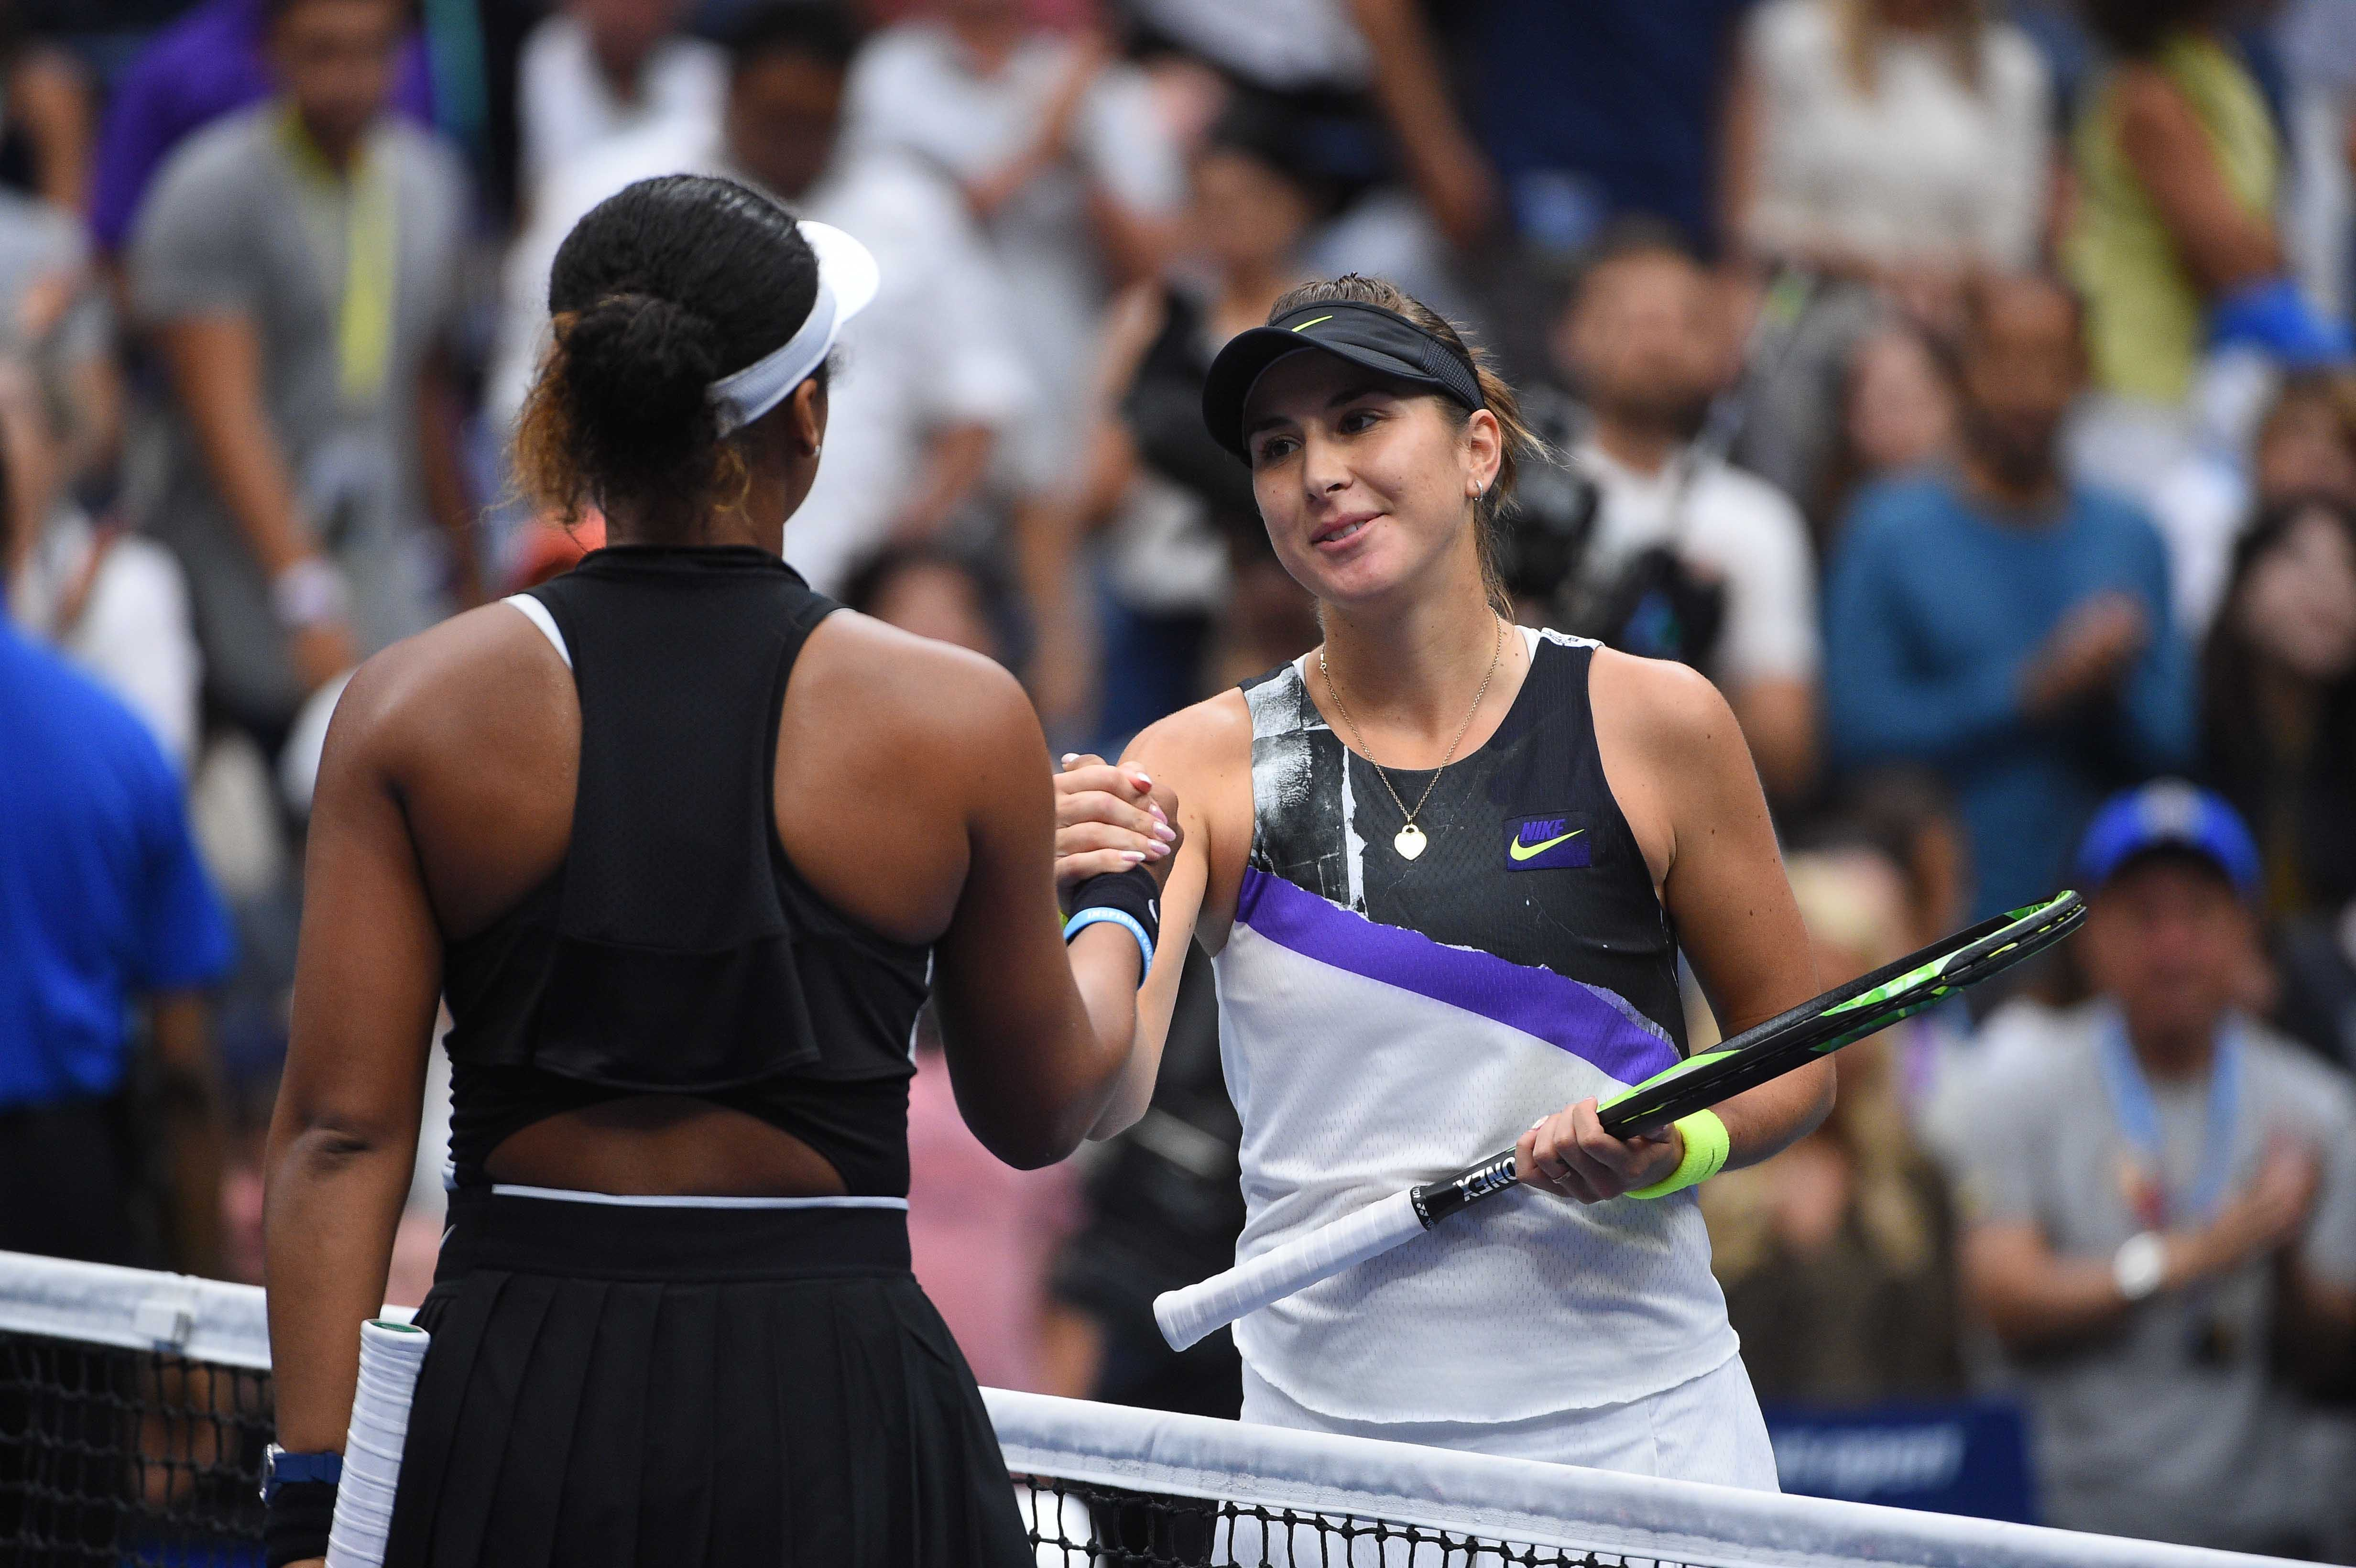 Belinda Bencic defeats Naomi Osaka in the fourth round of the 2019 US Open